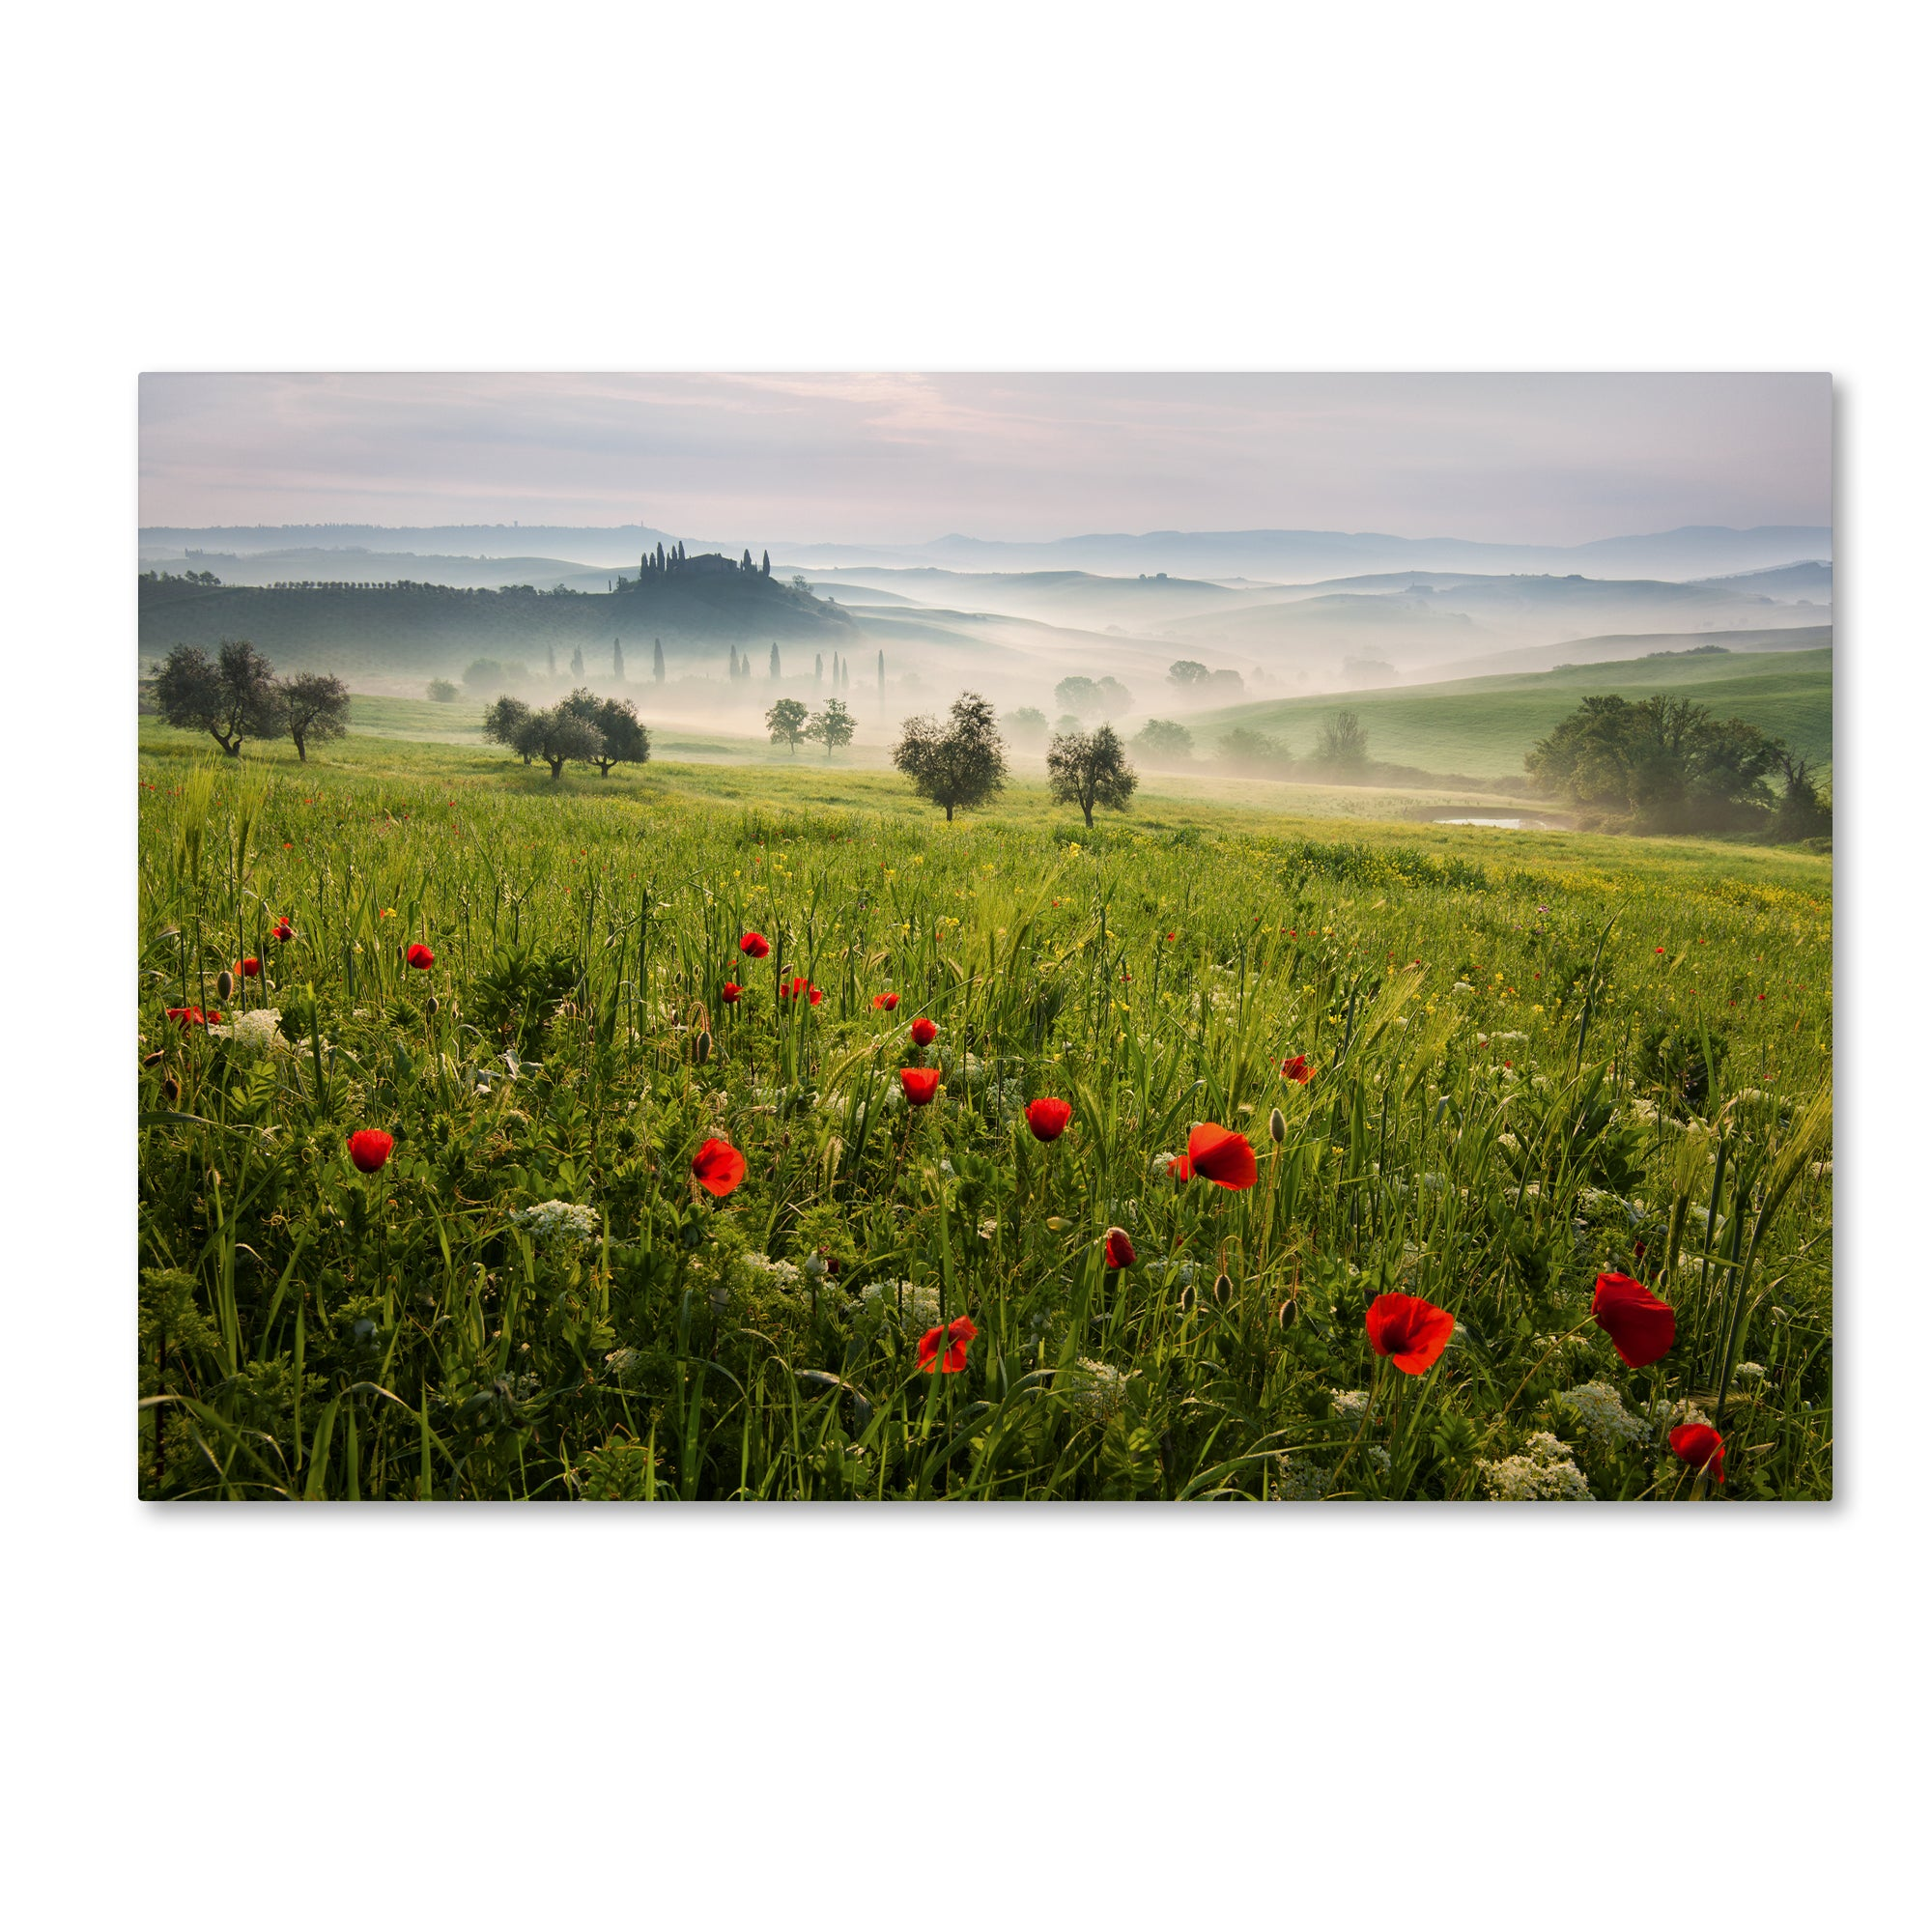 Daniel Rericha 'Tuscan Spring' Canvas Art (16x24), Red